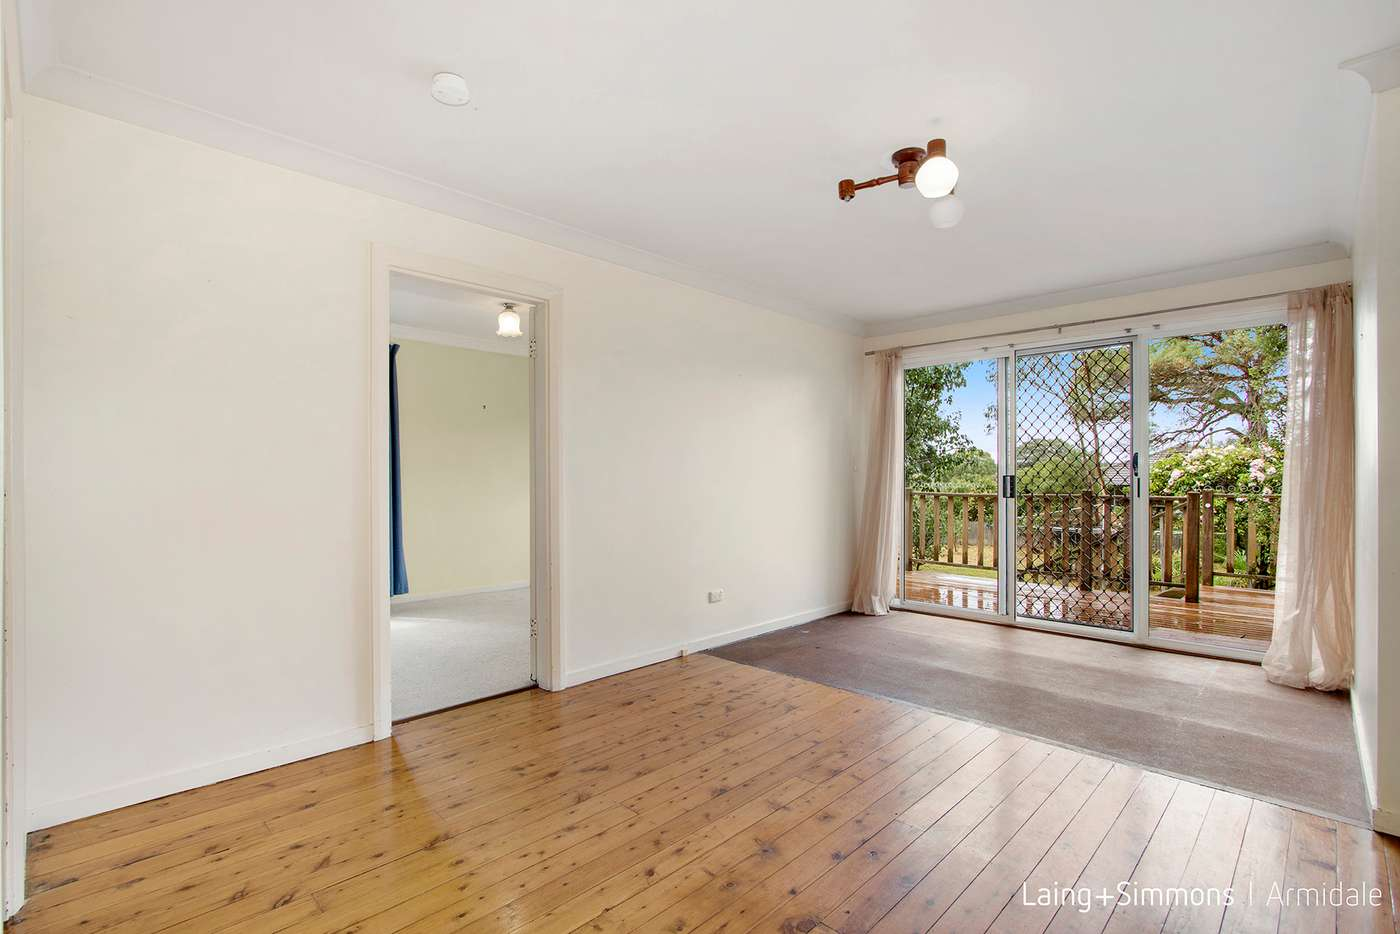 Fifth view of Homely house listing, 50 Newton Street, Armidale NSW 2350